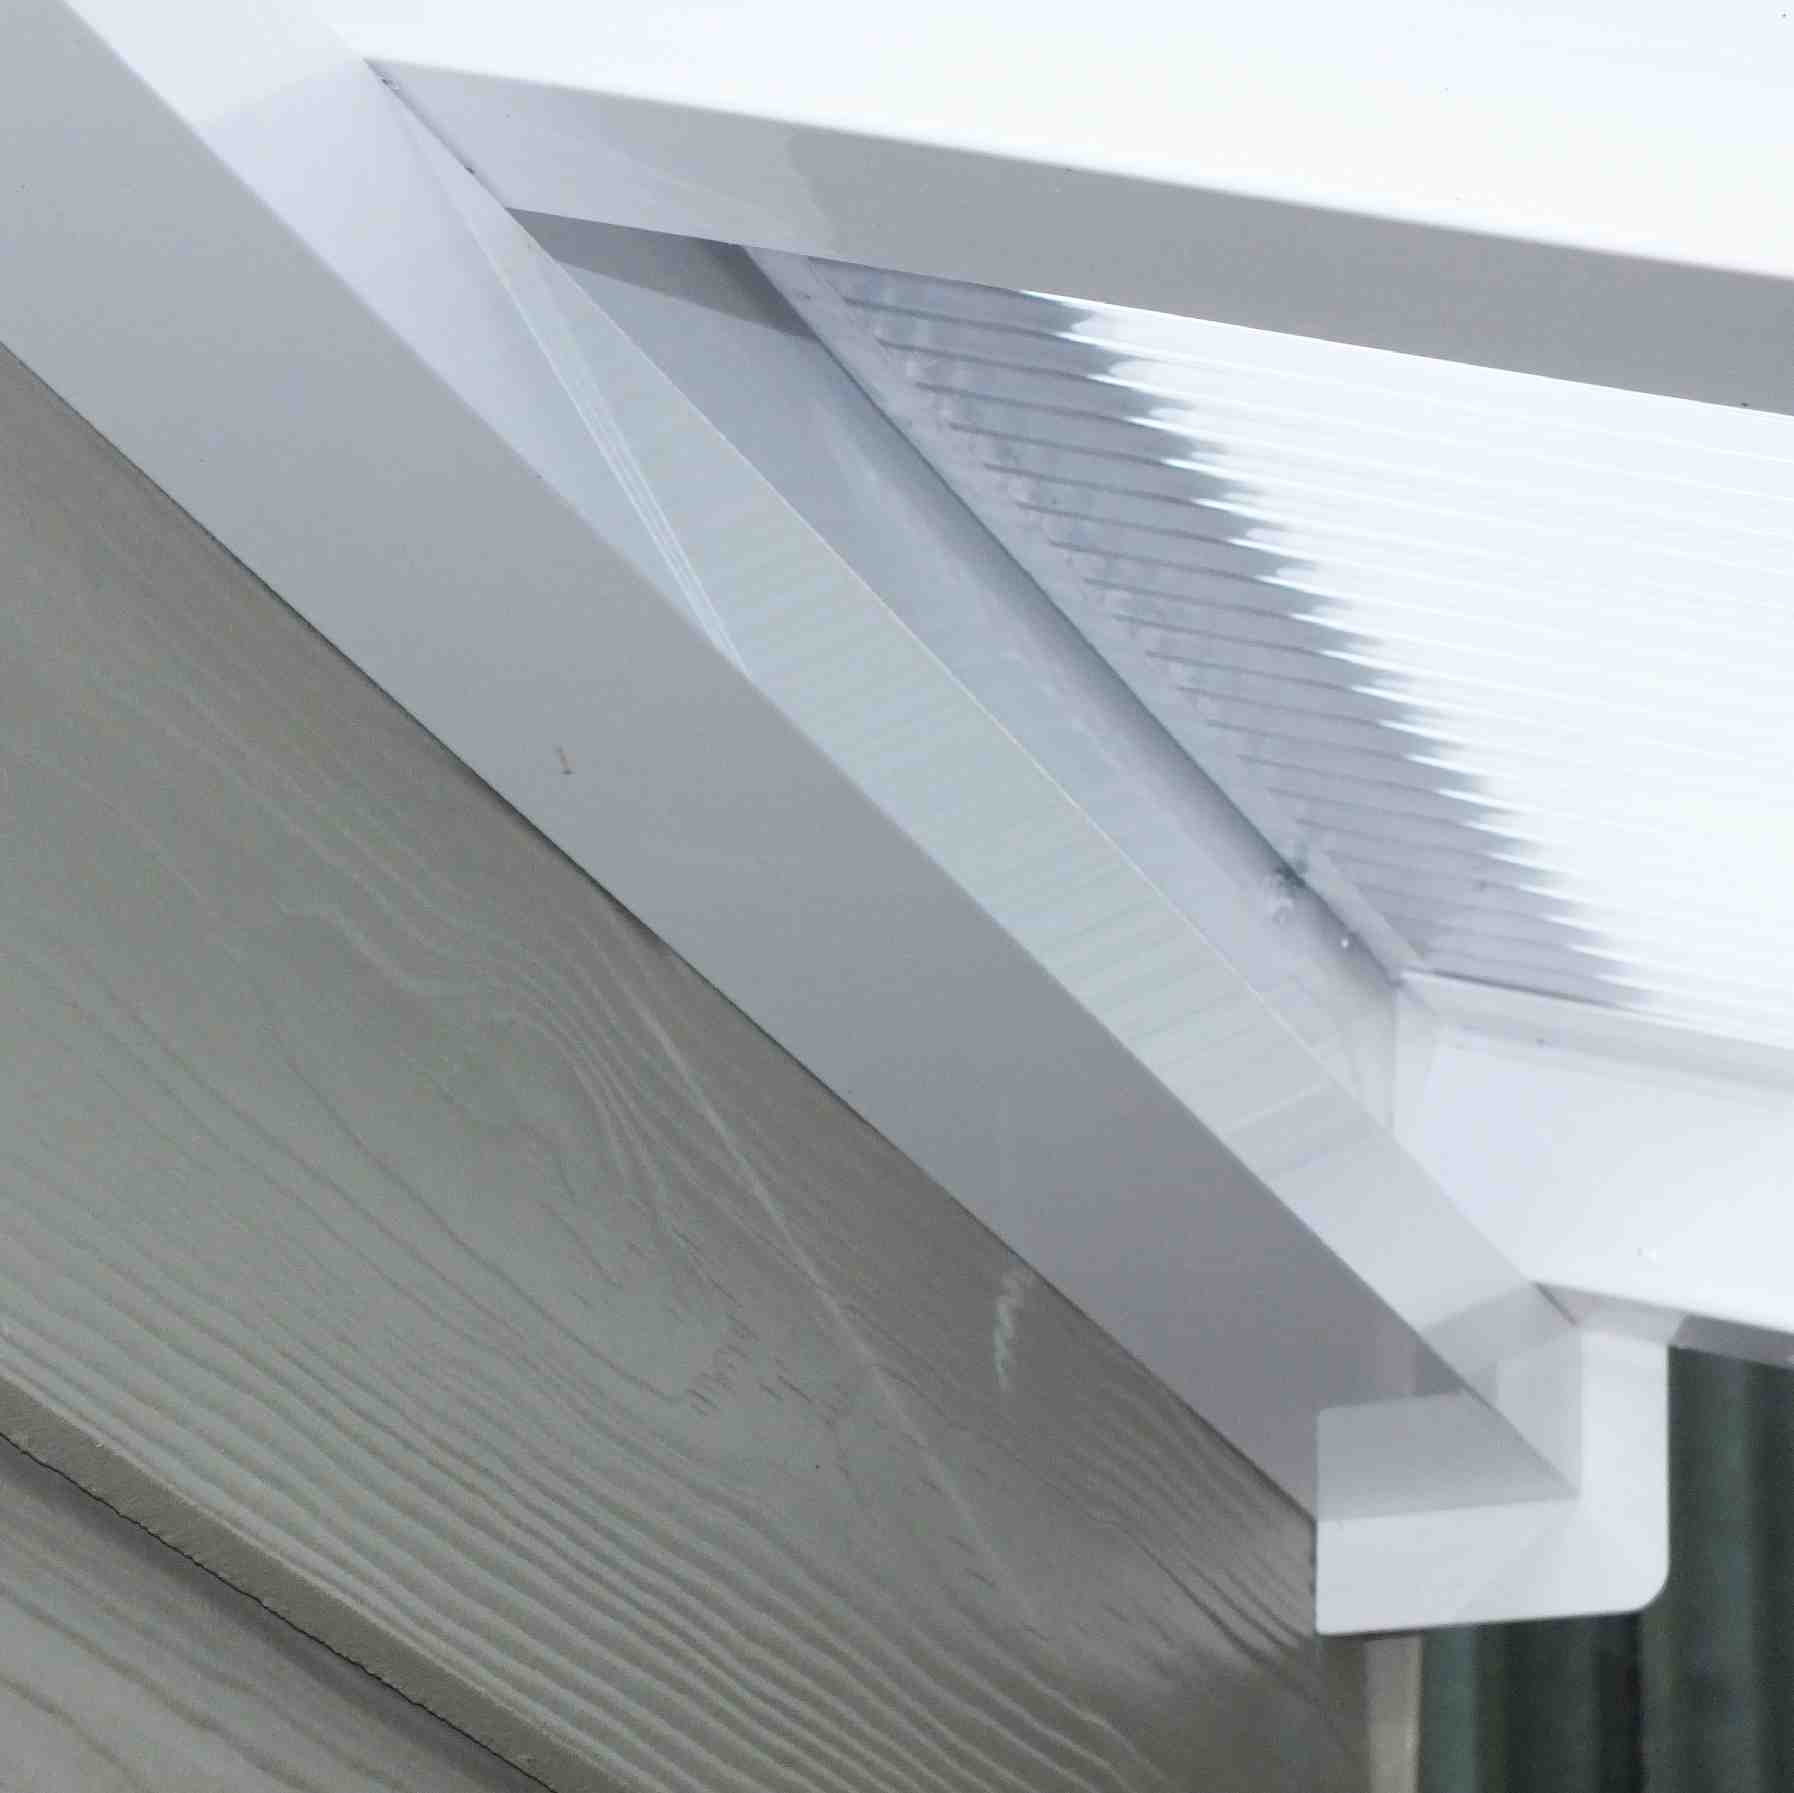 Great deals on Omega Verandah with 6mm Glass Clear Plate Polycarbonate Glazing - 2.1m (W) x 2.5m (P), (2) Supporting Posts